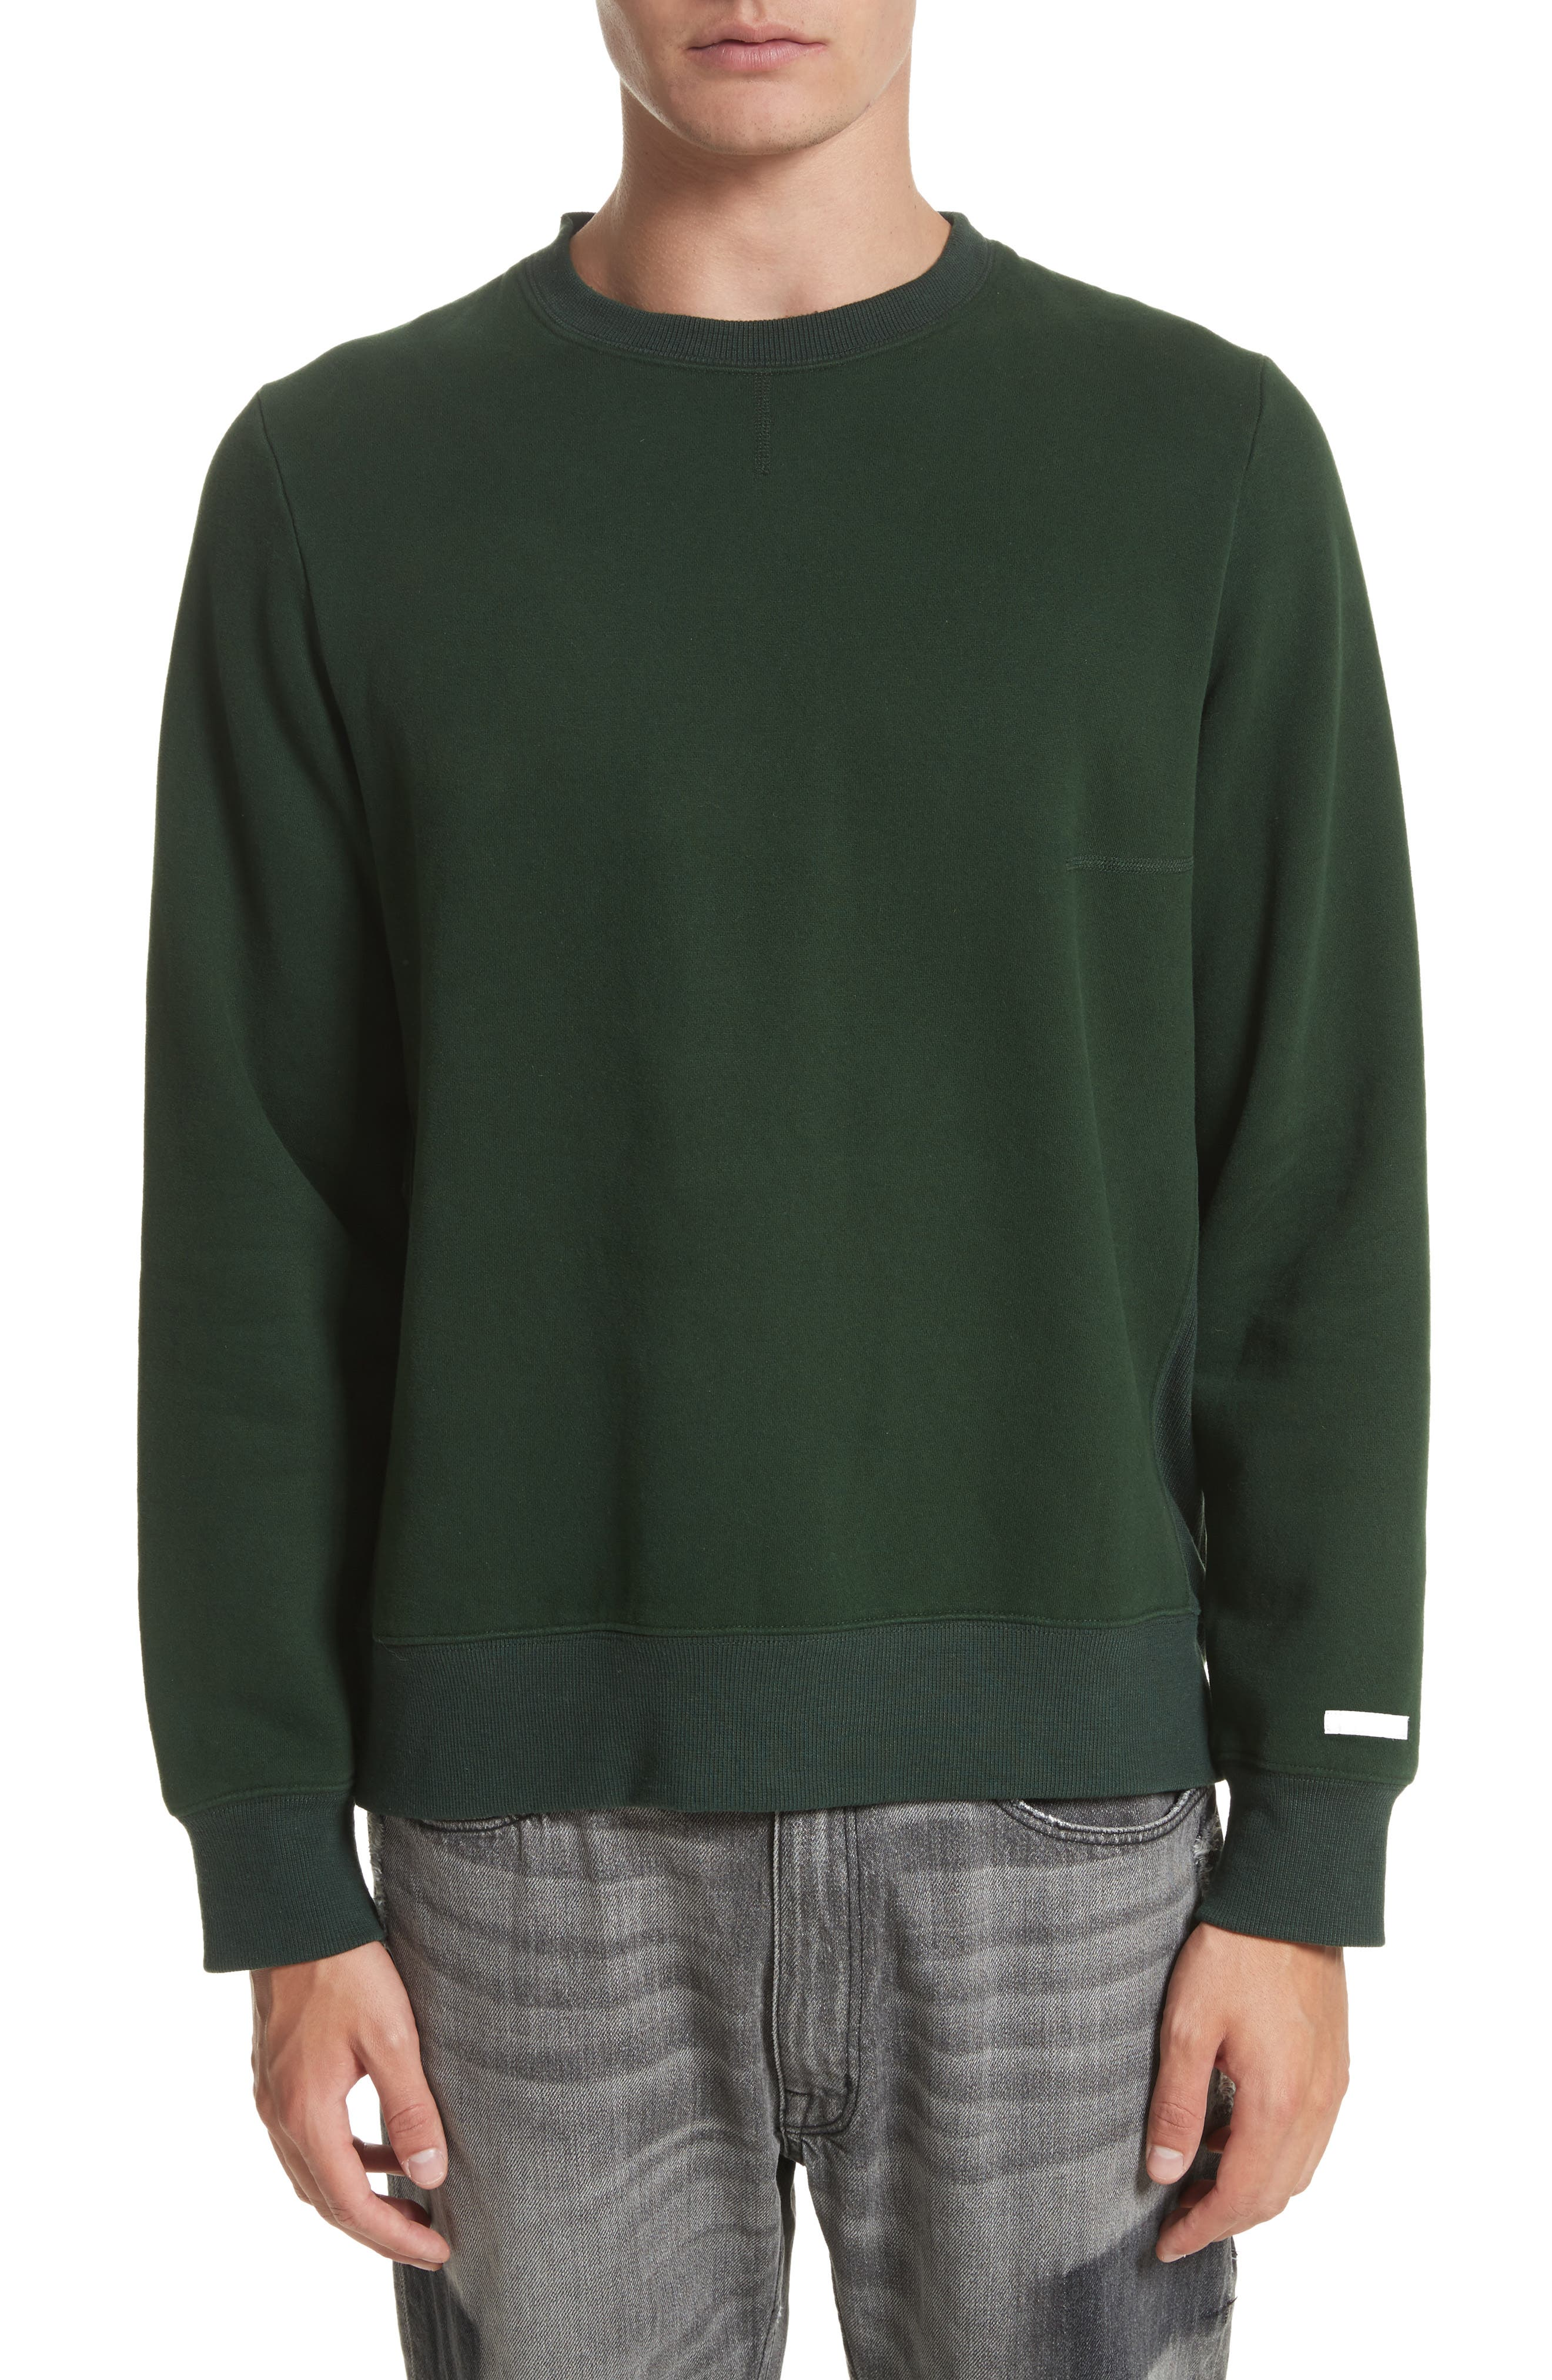 OVADIA & SONS Crewneck Sweater